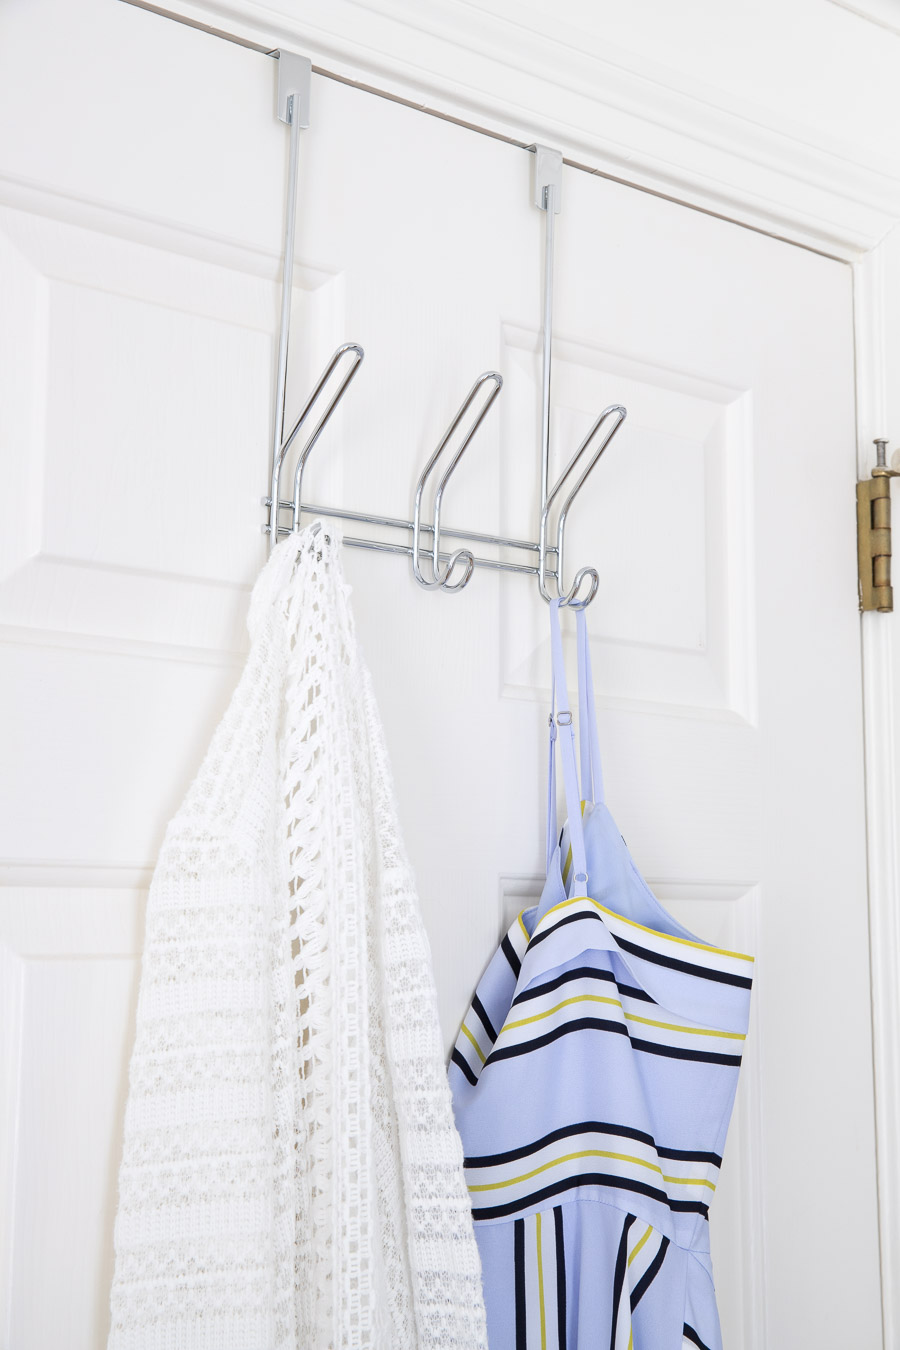 Simple over the door hooks for robes, towels, or hanging your clothes at the end of the day!